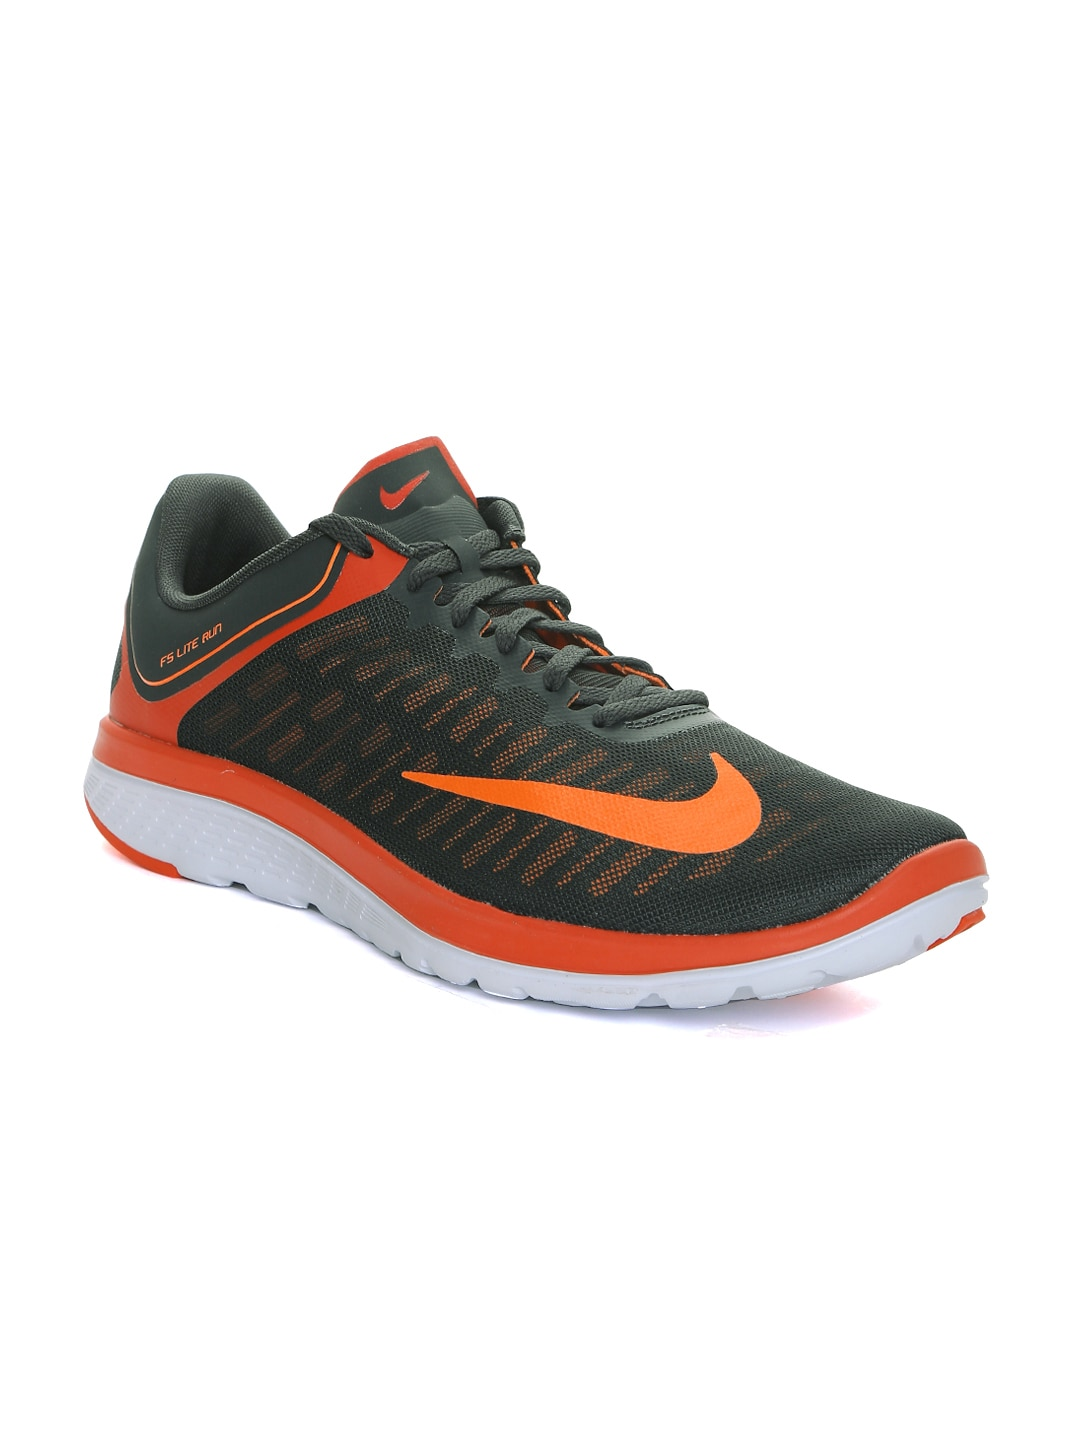 new products eda25 2701e Nike 852435-004 Men Black Fs Lite Run 4 Running Shoes ...